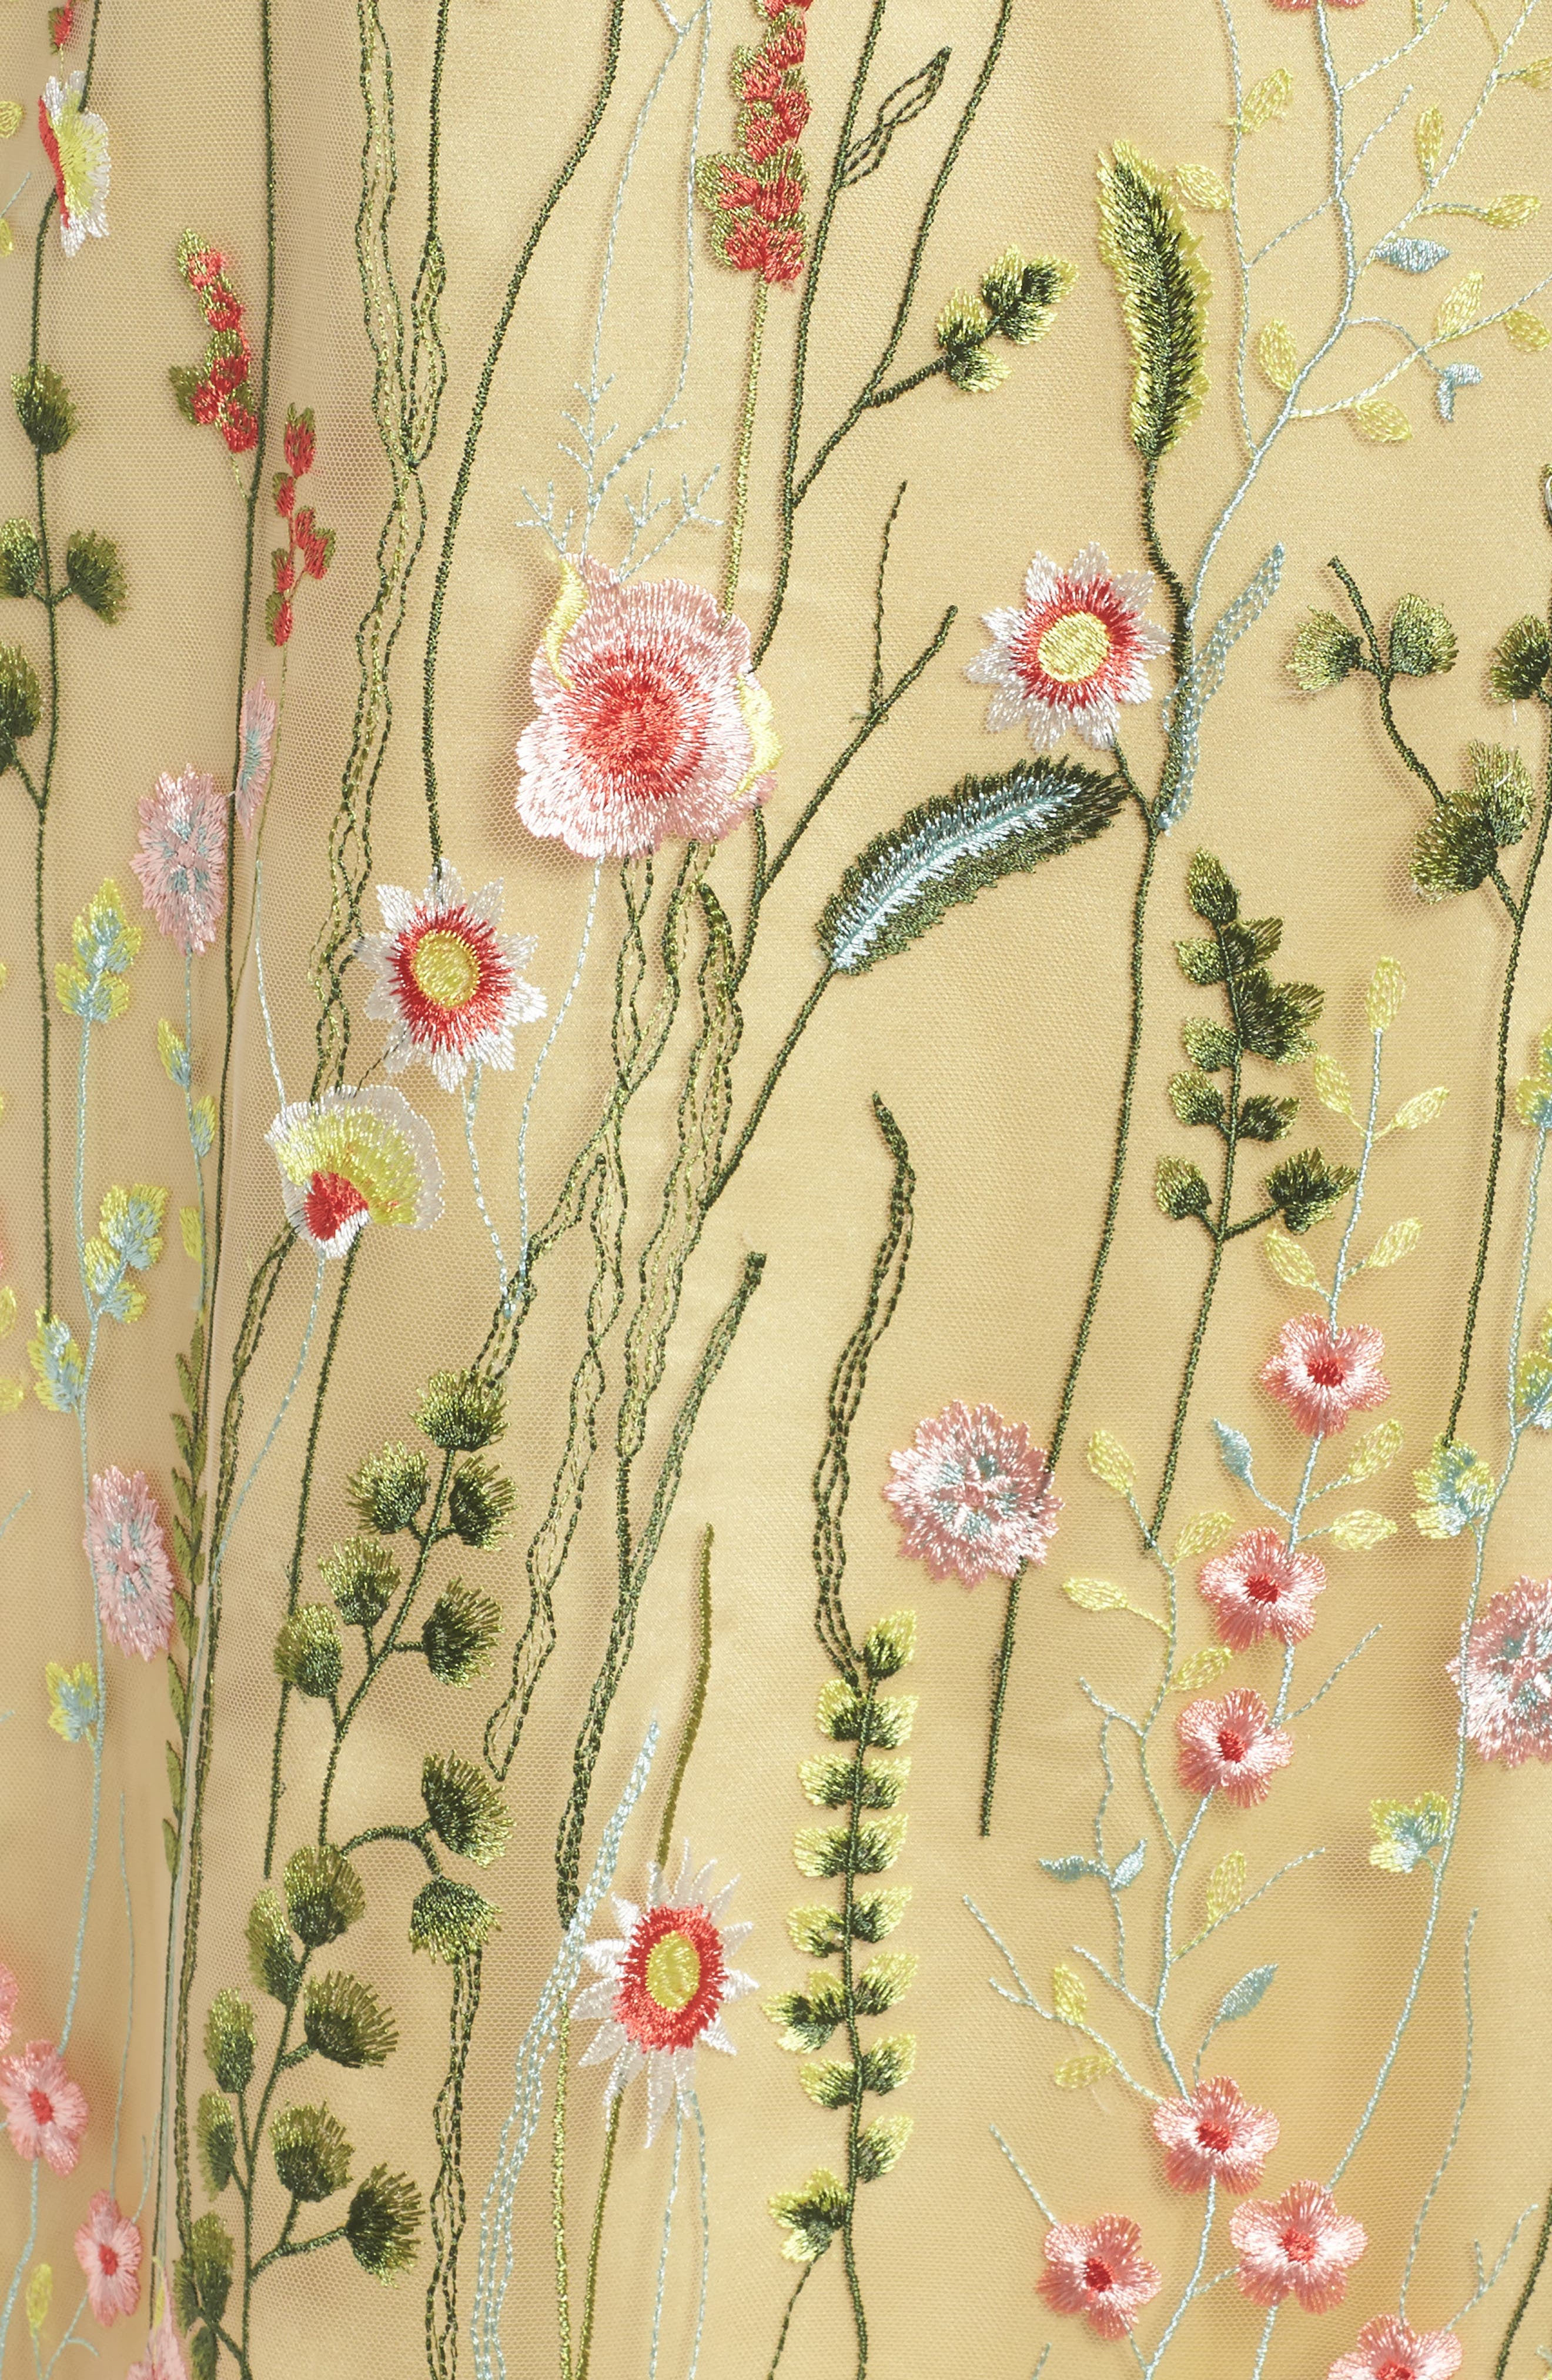 Floral Embroidered Shift Dress,                             Alternate thumbnail 5, color,                             798